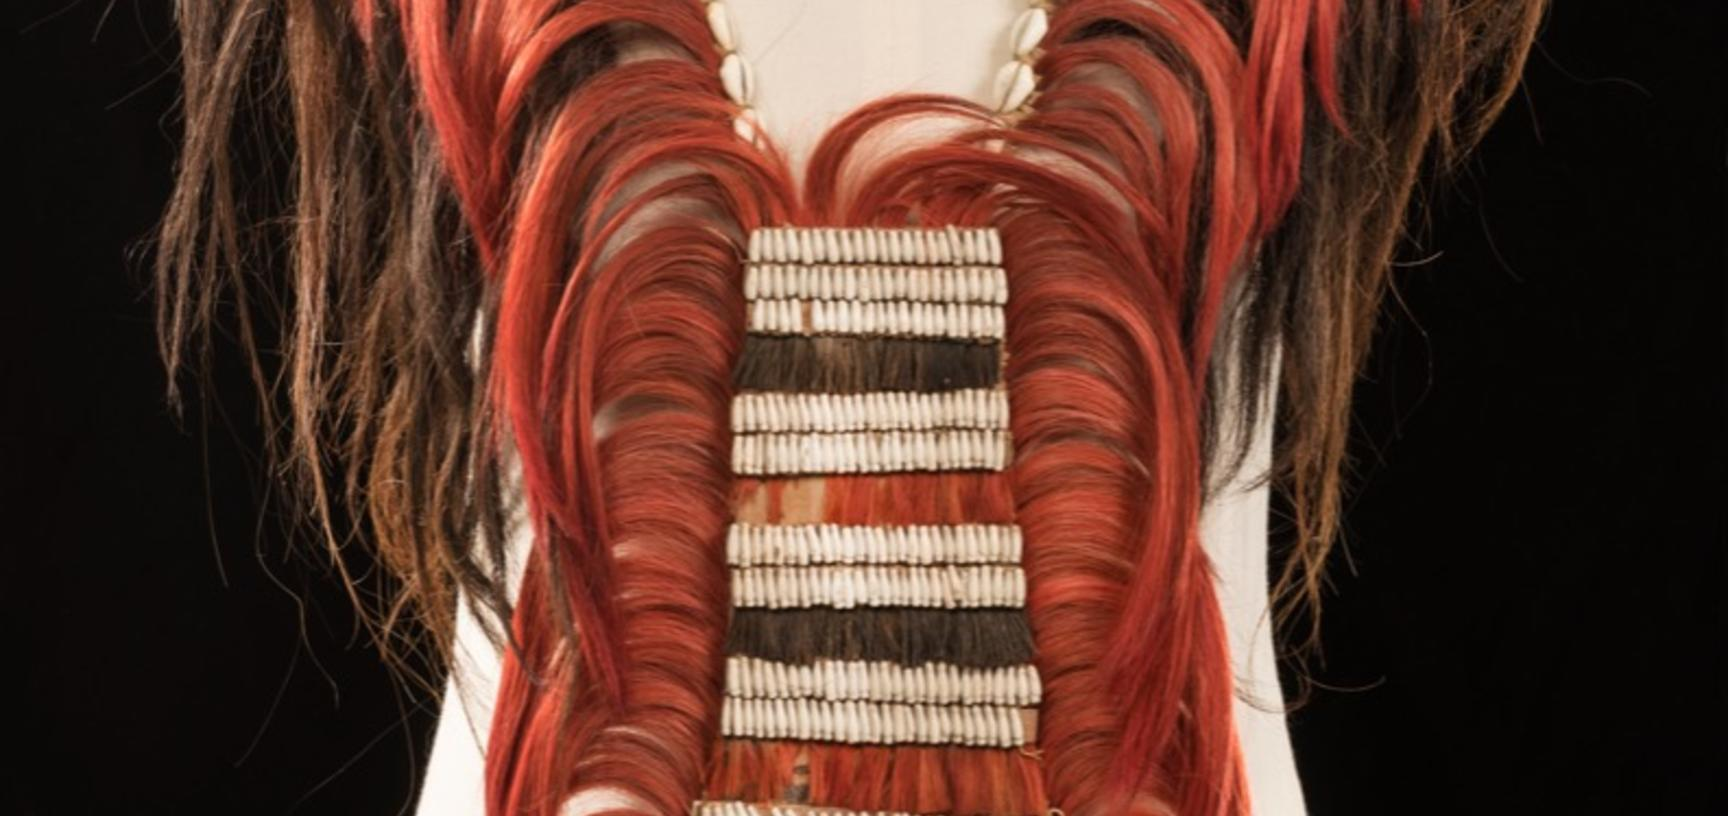 Angami Naga neck and breast ornament. Collected by Robert Gosset Woodthorpe; donated to the Pitt Rivers Museum by Edward Thomas Wilson, May 1909.